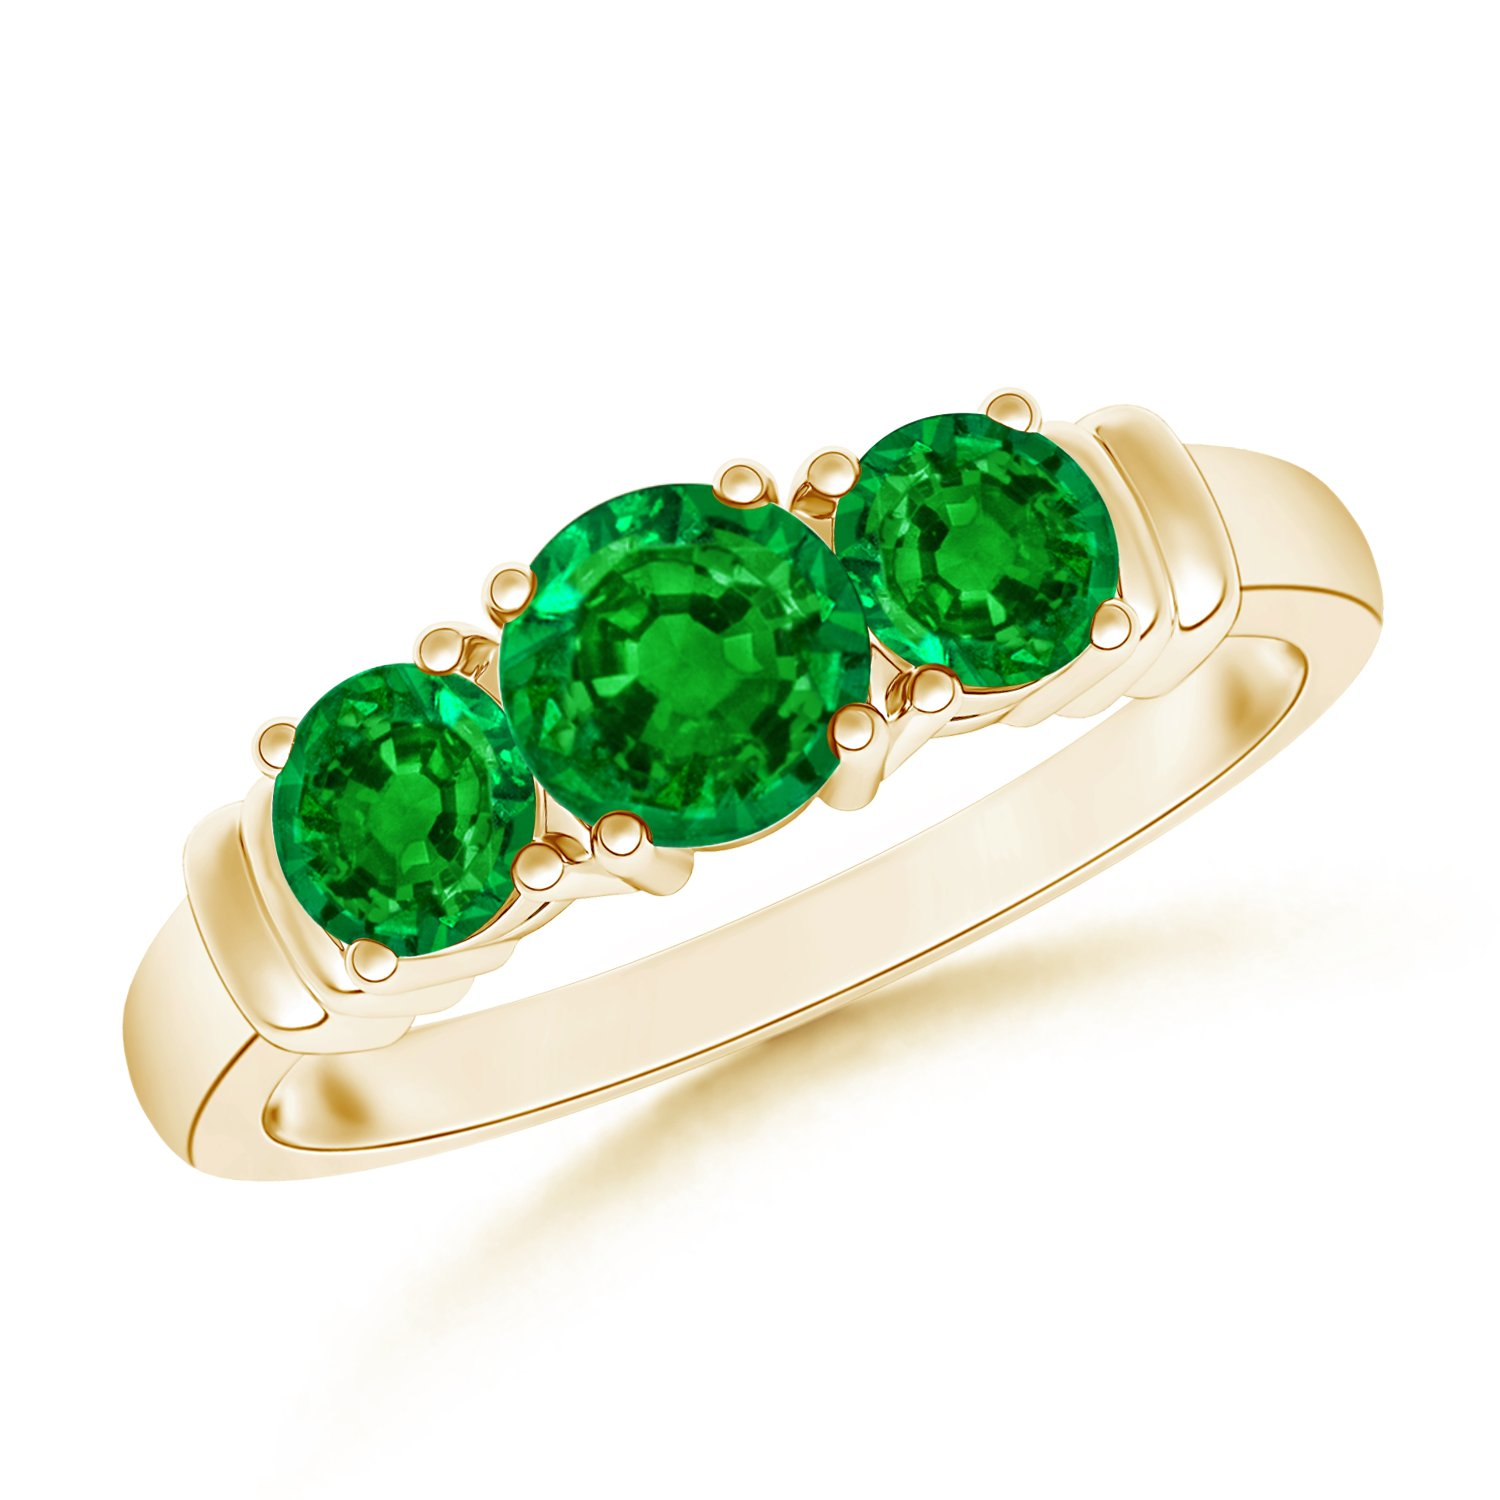 May Birthstone - Vintage Style Three Stone Emerald Wedding Ring for Women in 14K Yellow Gold (5mm Emerald)